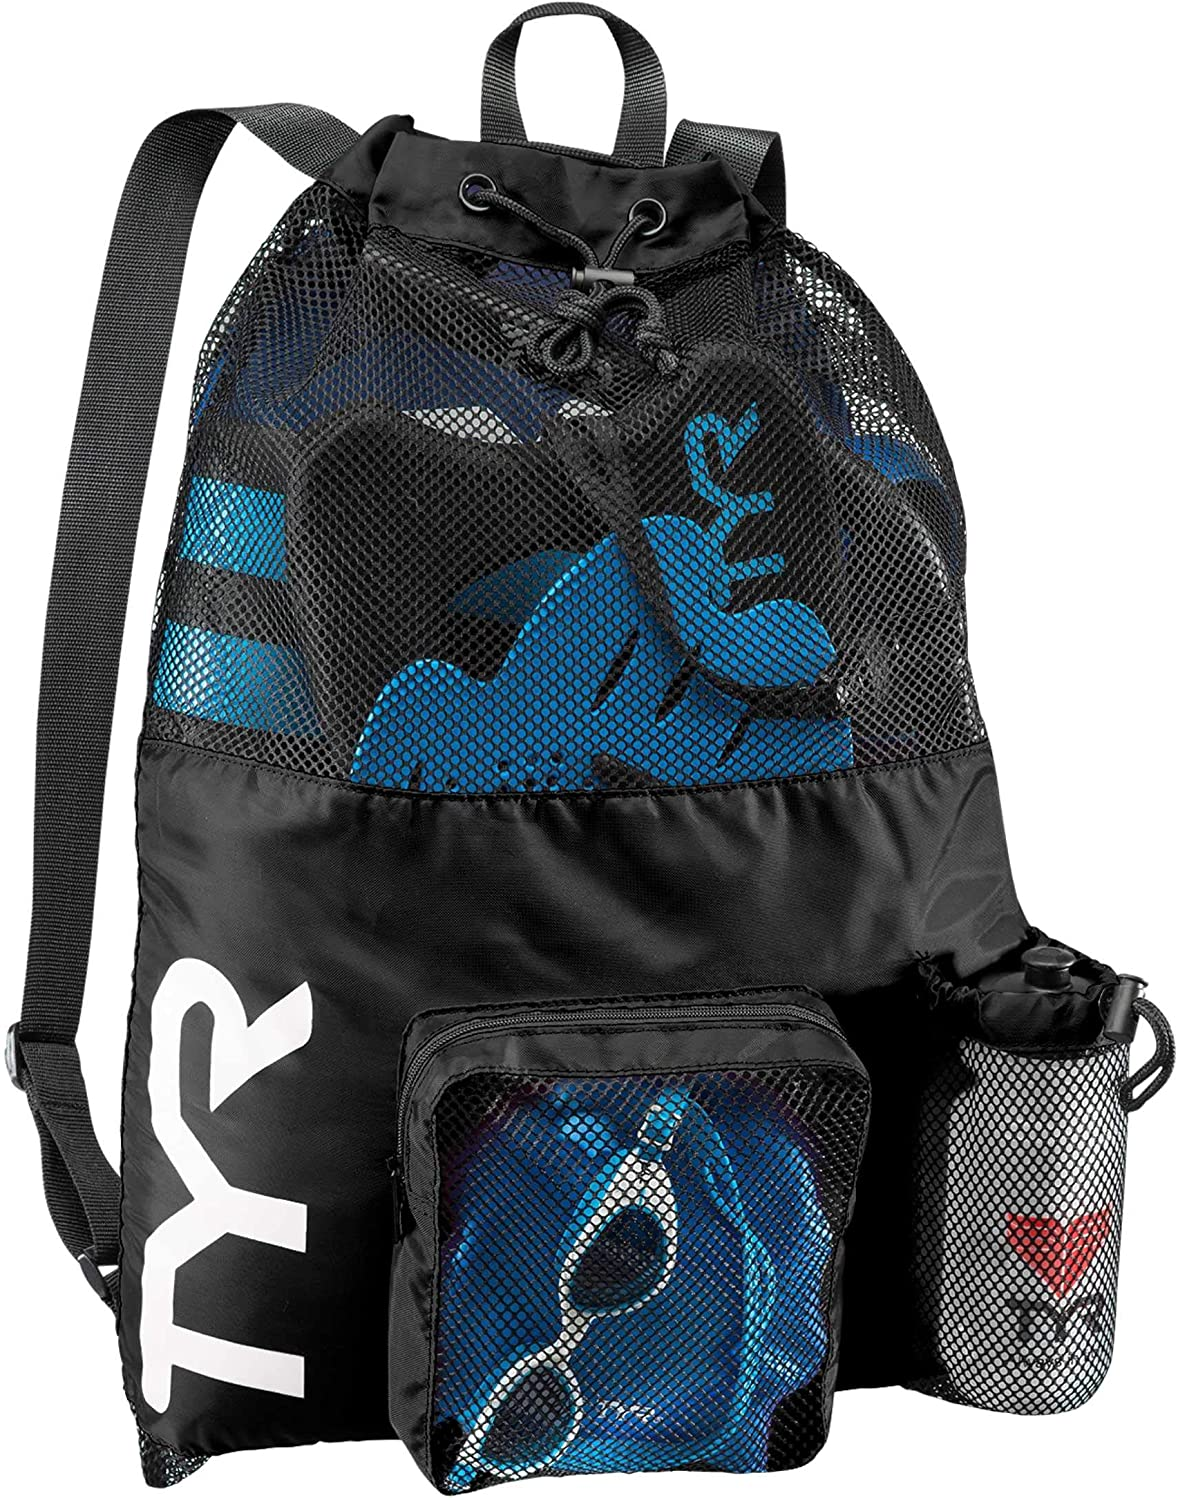 TYR Big Mesh Mummy Backpack For New New arrival arrival Swimming Workout and G Gym Wet